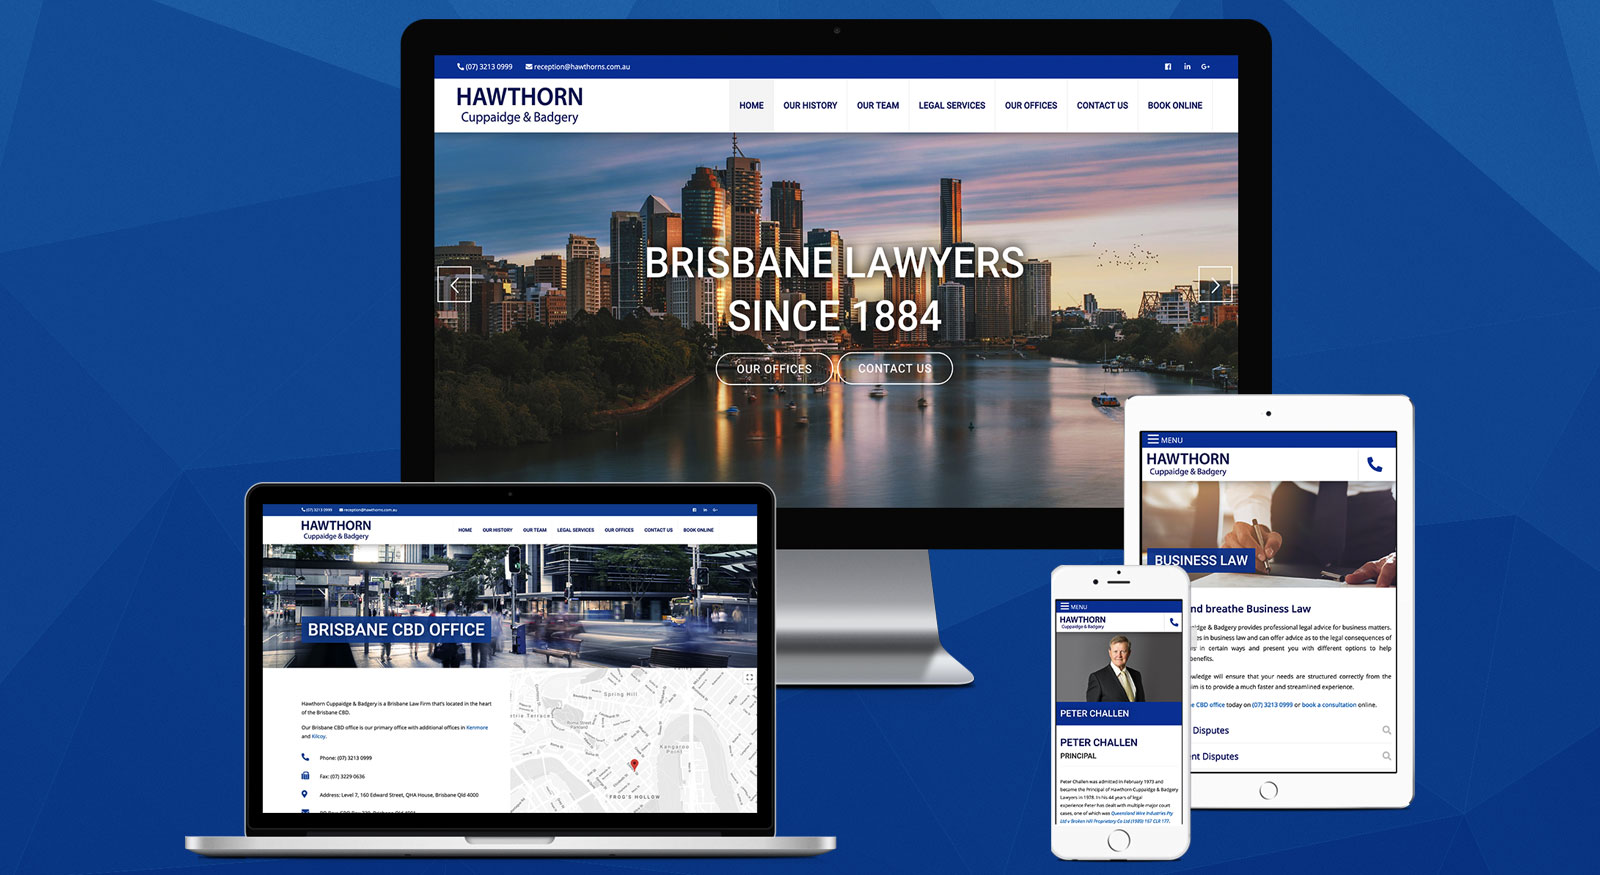 Brisbane Lawyers Website Design - OnePoint Software Solutions - Hawthorn Cuppaidge & Badgery